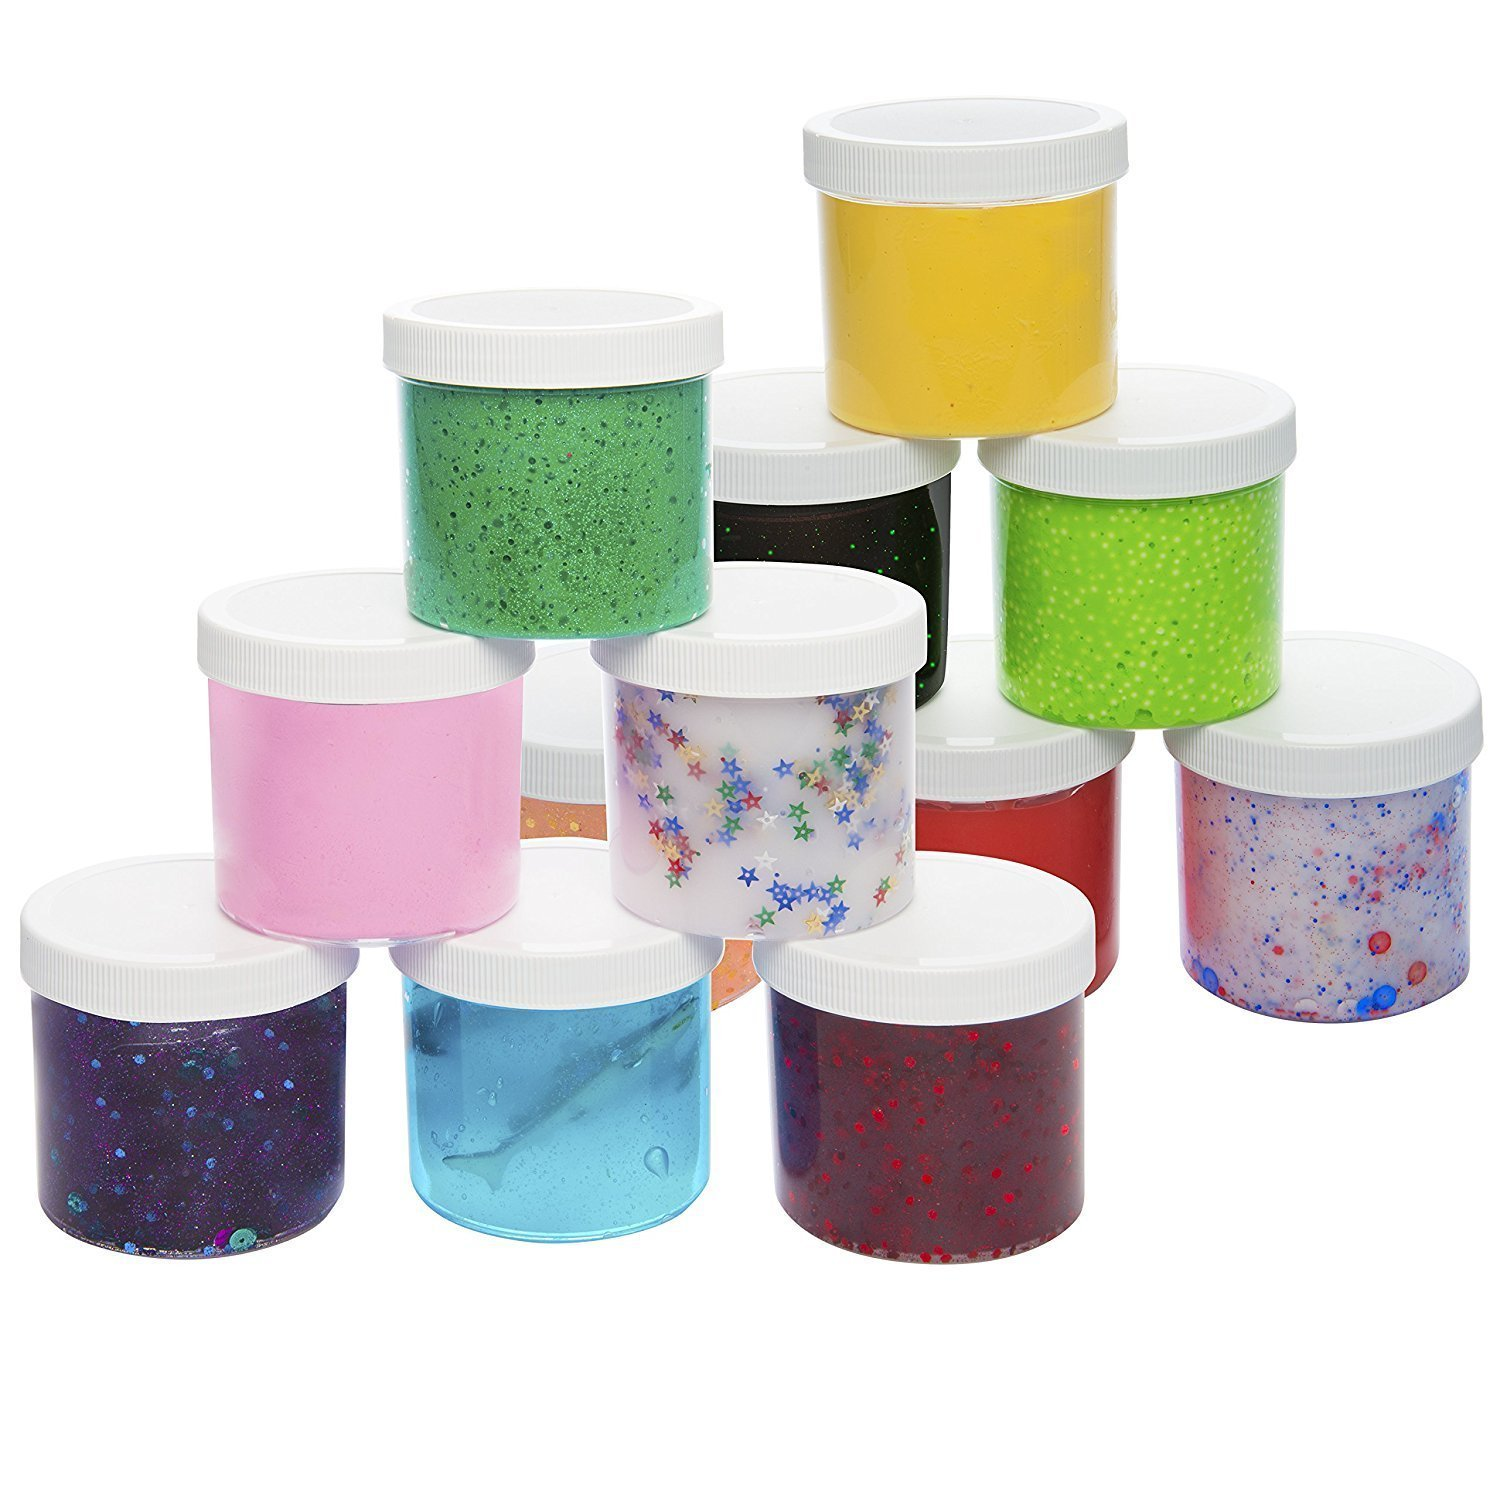 Slime Storage Jars 6oz (12 Pack) - Clear Containers For All Your Glue Putty Making SCS Direct